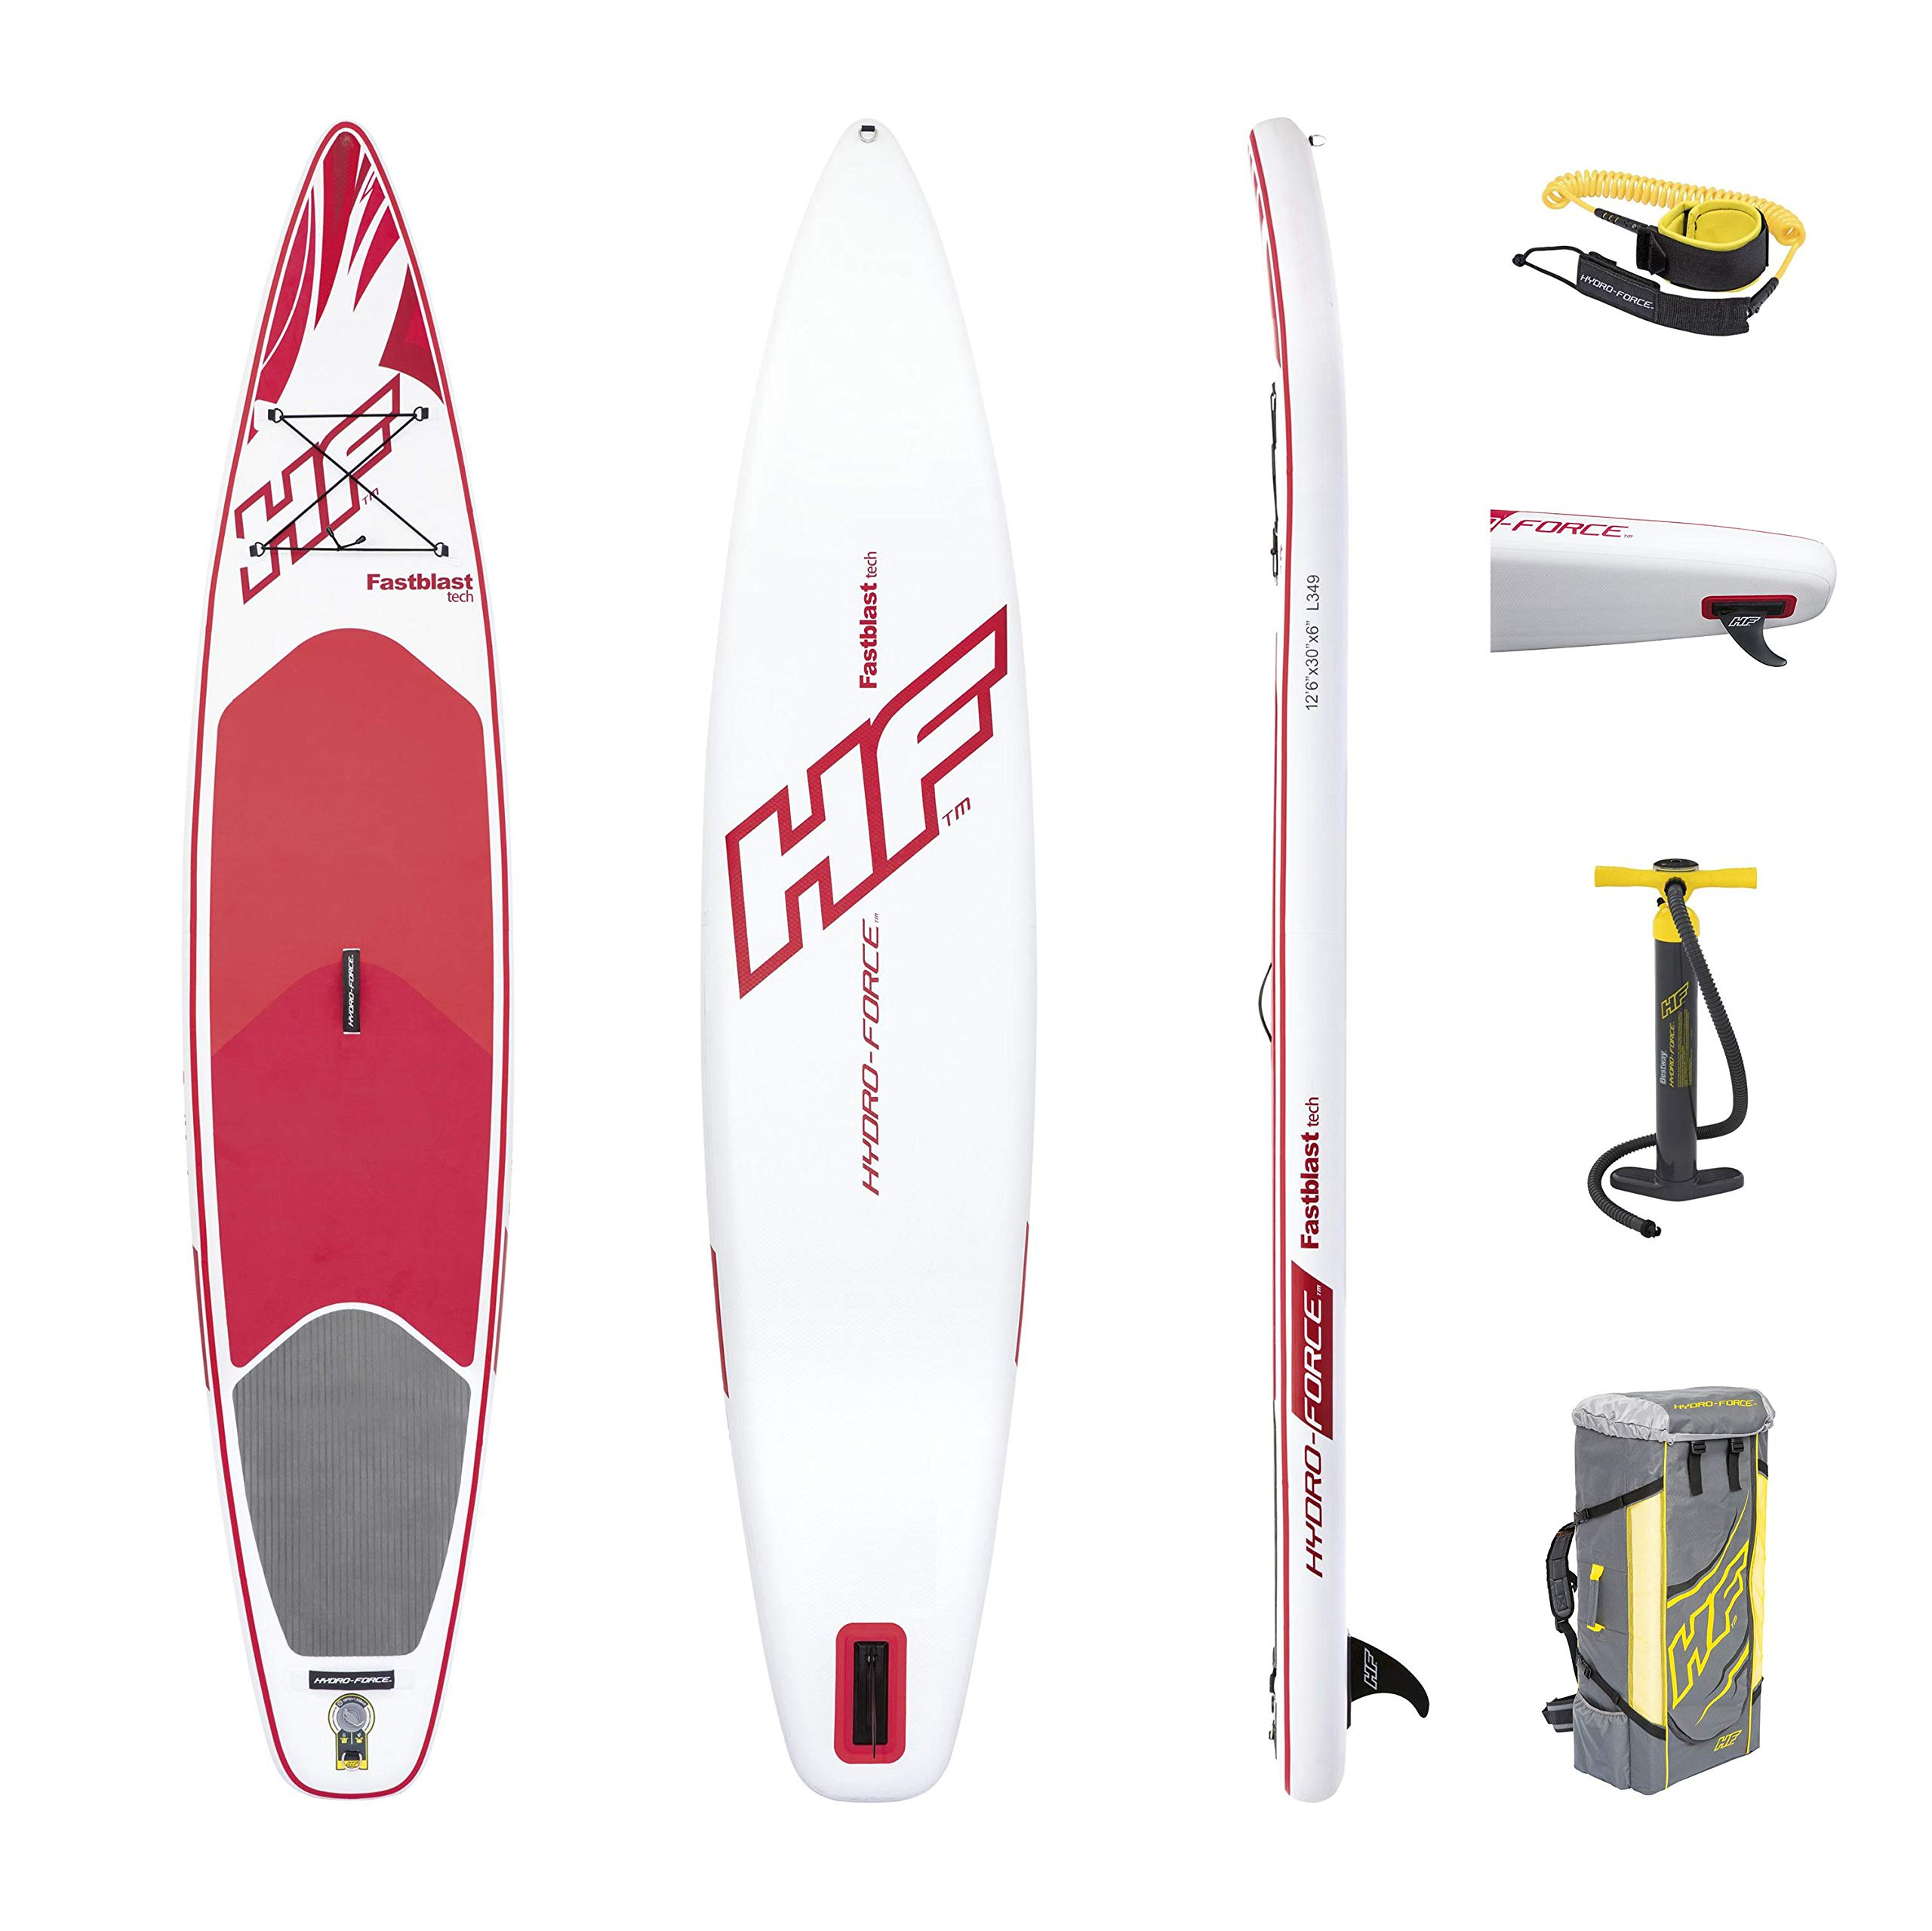 Bestway 65306 - Tabla Paddle Surf Hinchable Hydro-Force Fast Blast ...